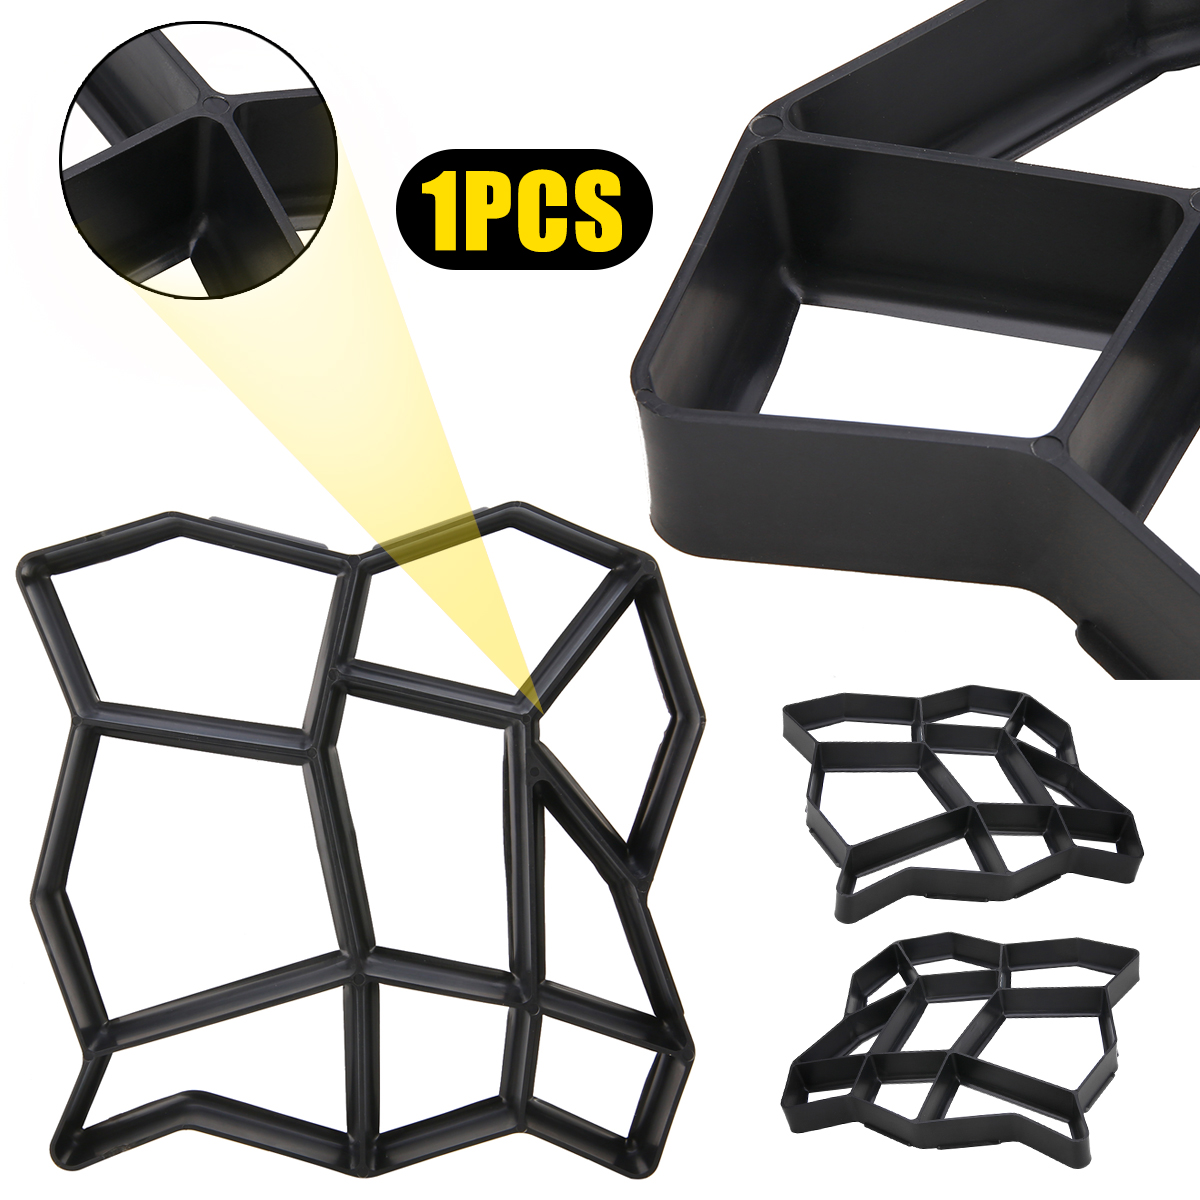 Plastic Paving Mould Concrete Stepping Driveway Stone Path Mold Patio Maker High Quality Tools For DIY Garden Pavement